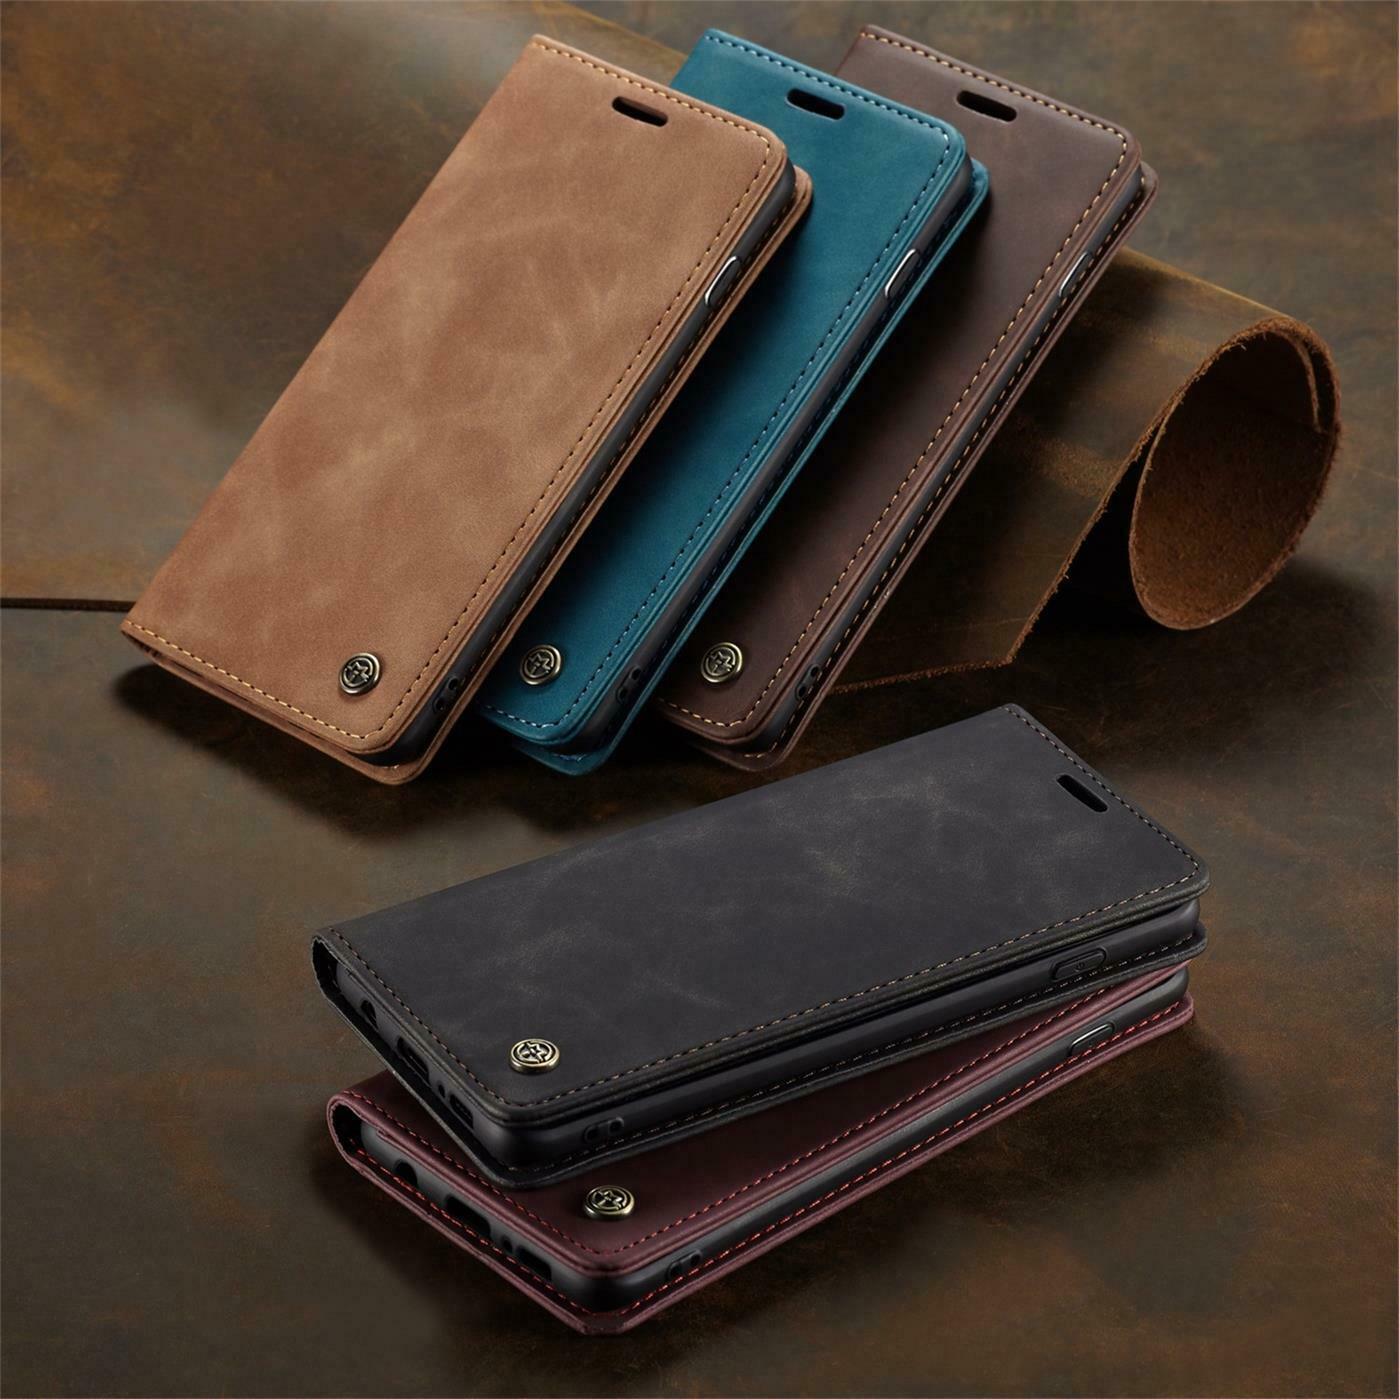 CaseMe Universal Leather Wallet Case Cover Phone Bag For iPh